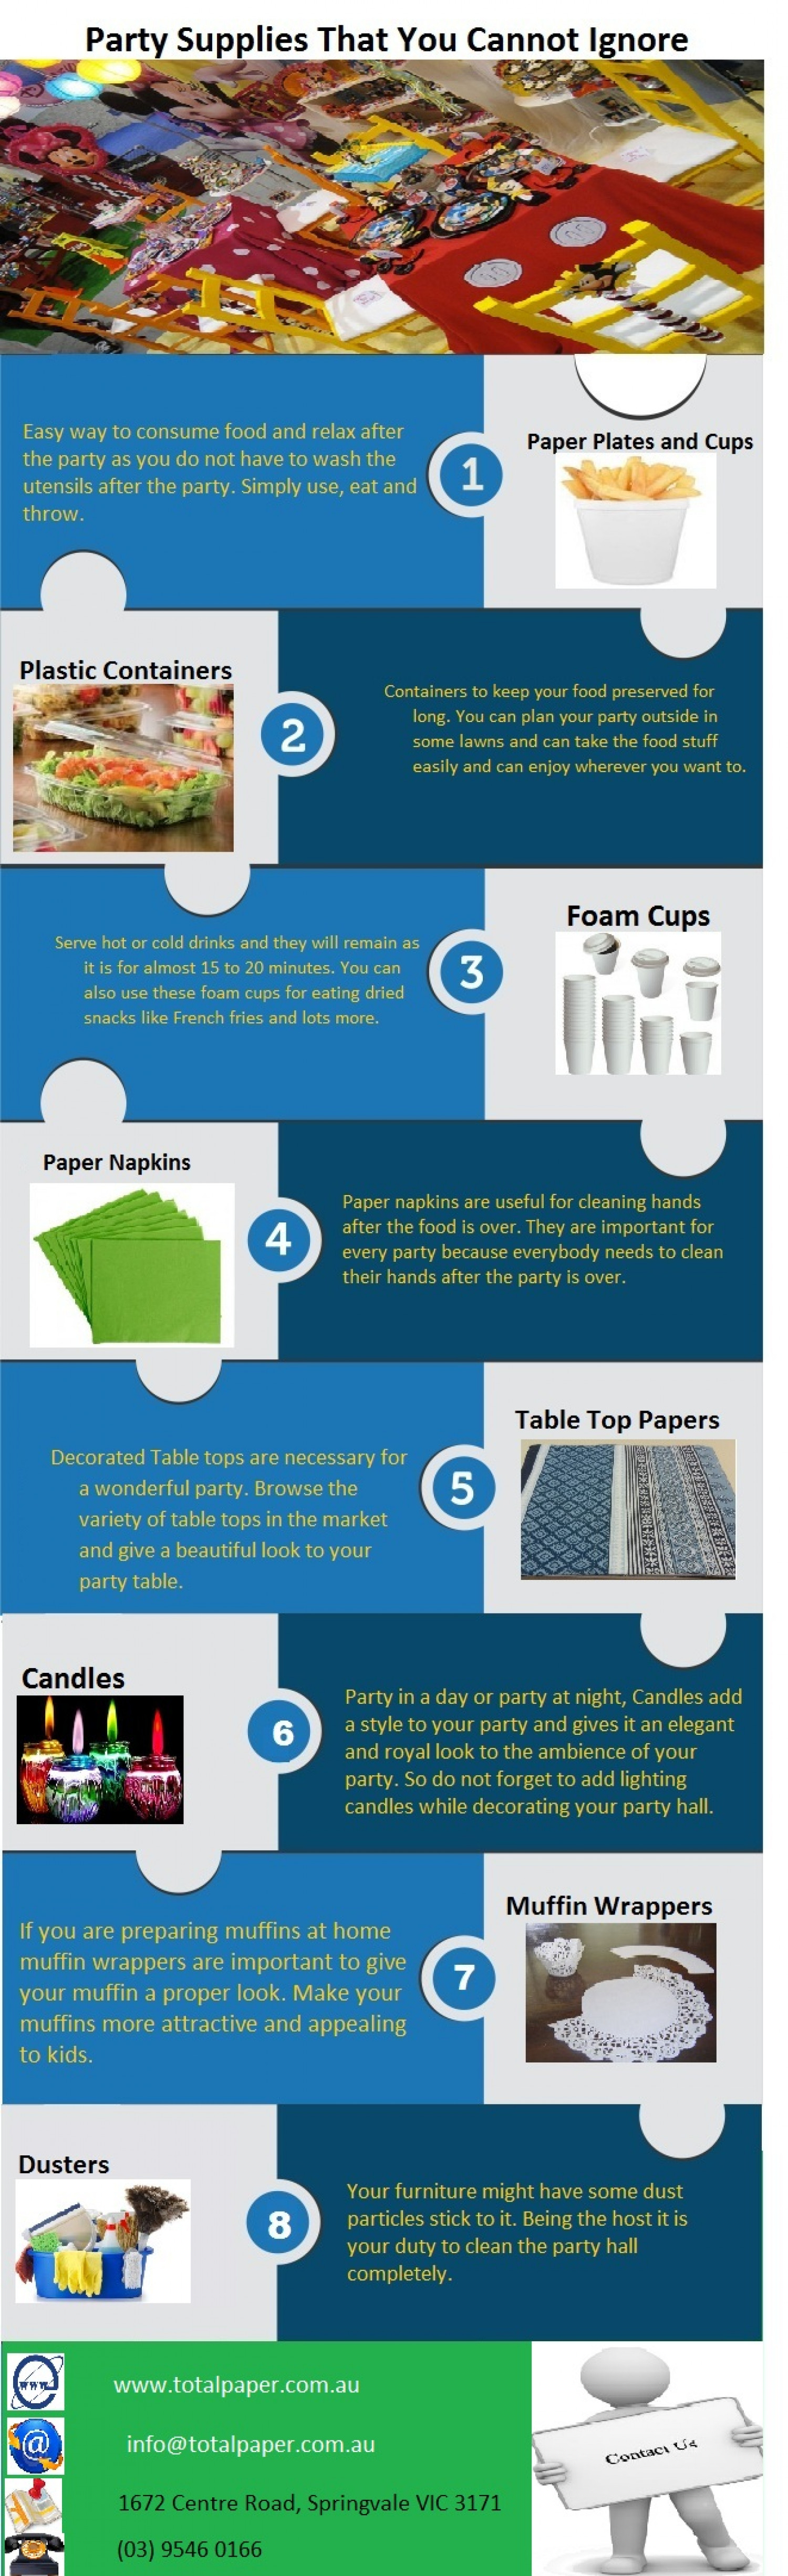 Party Supplies That You Cannot Ignore Infographic